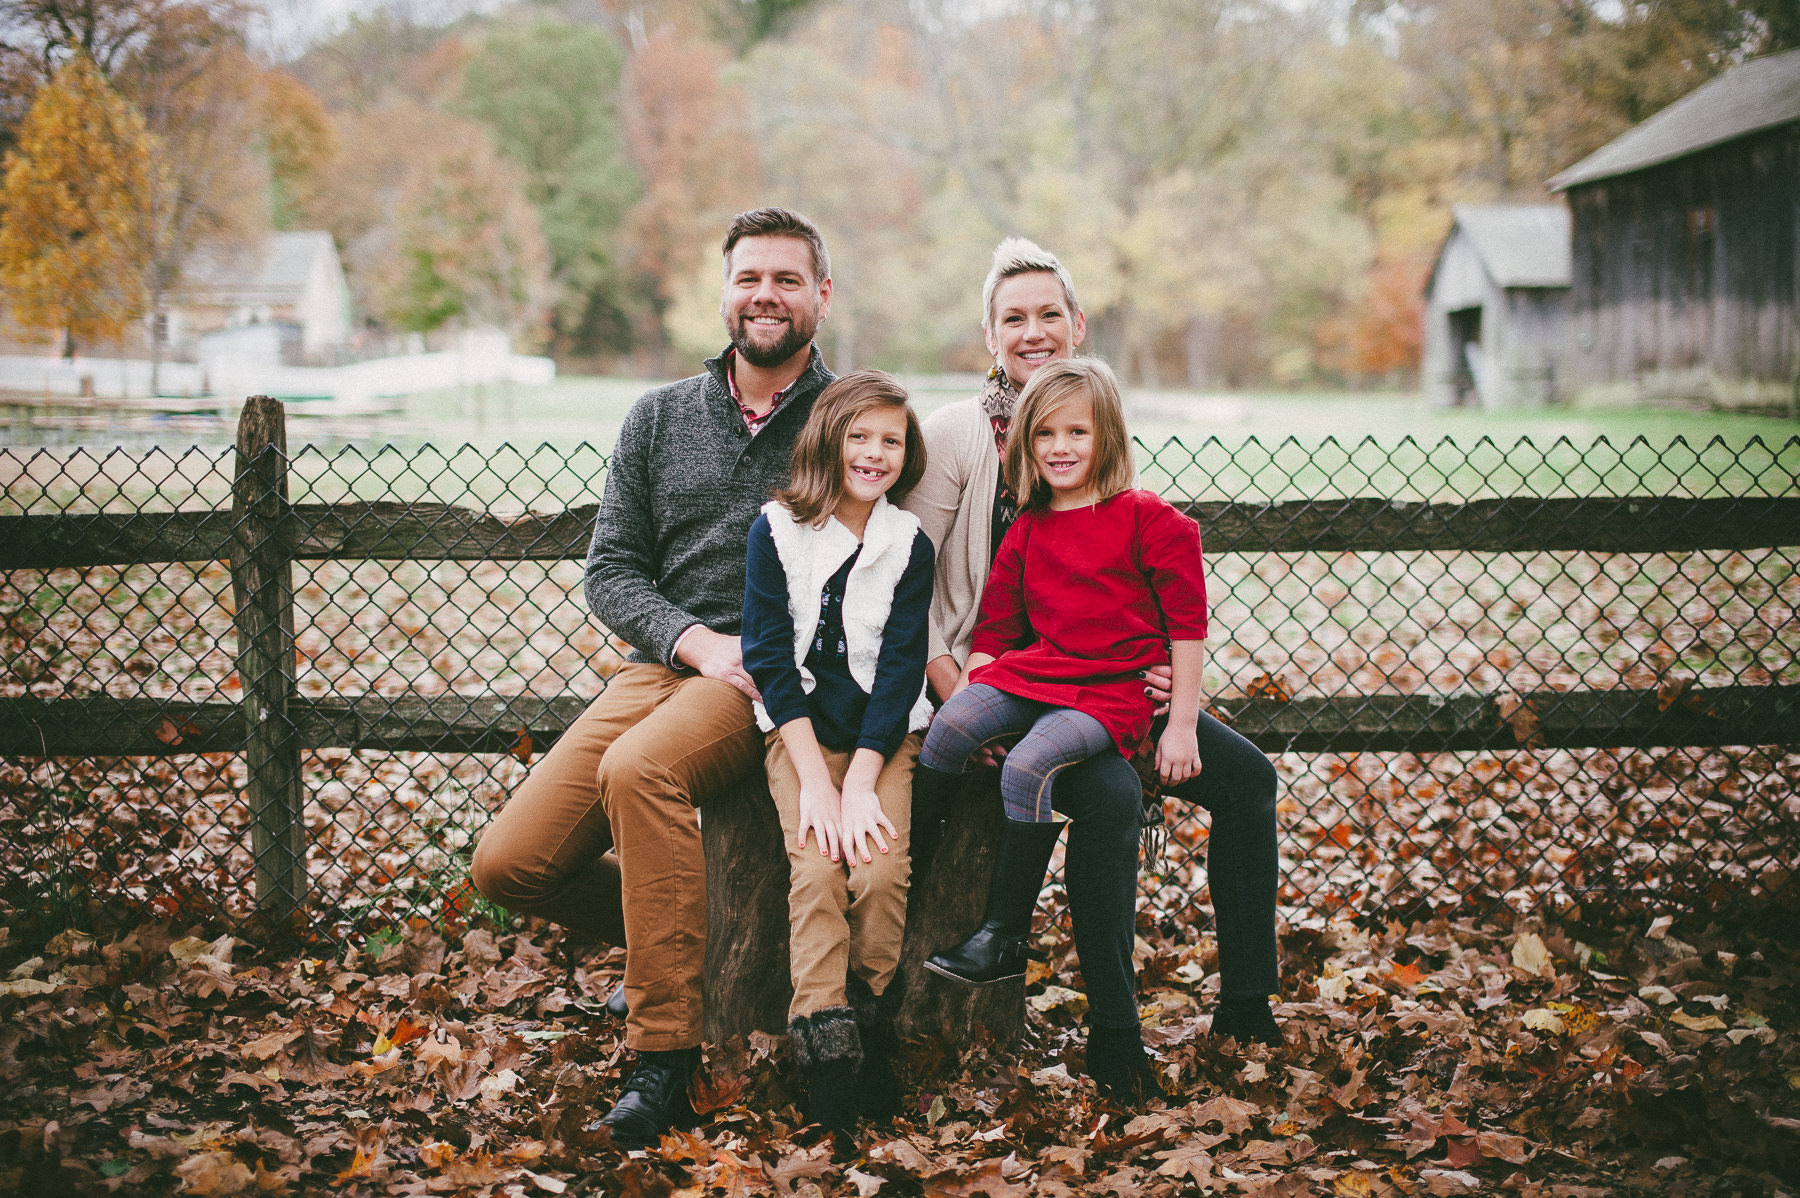 breighton-and-basette-photography-copyrighted-image-blog-betty-chad-and-company-family-shoot-005.jpg